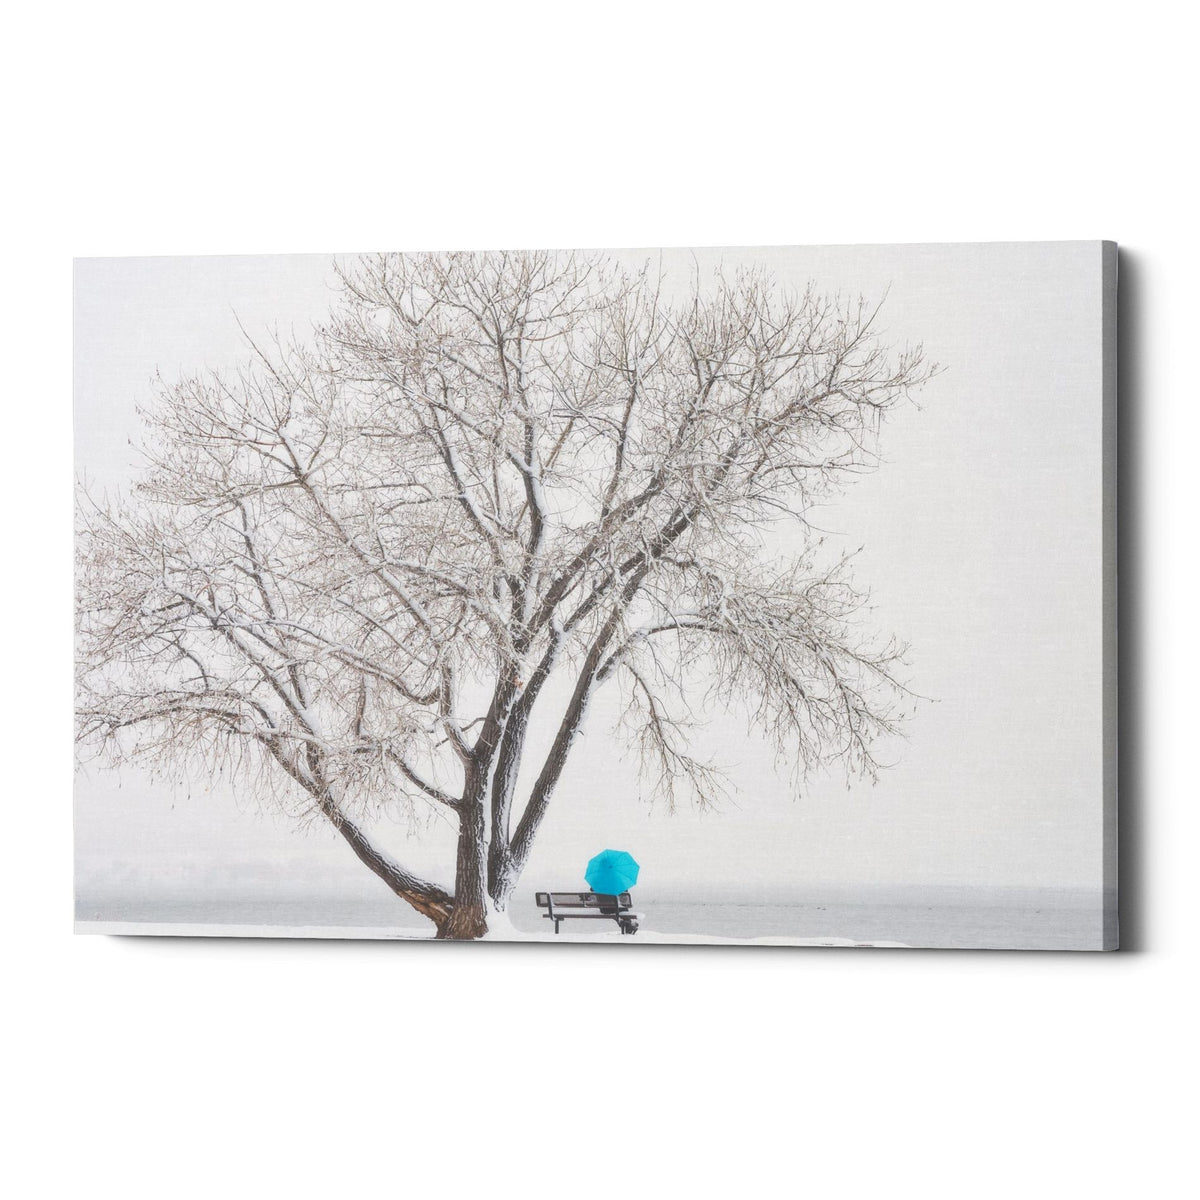 "Epic Graffiti ""Another Winter Alone"" by Darren White, Giclee Canvas Wall Art"